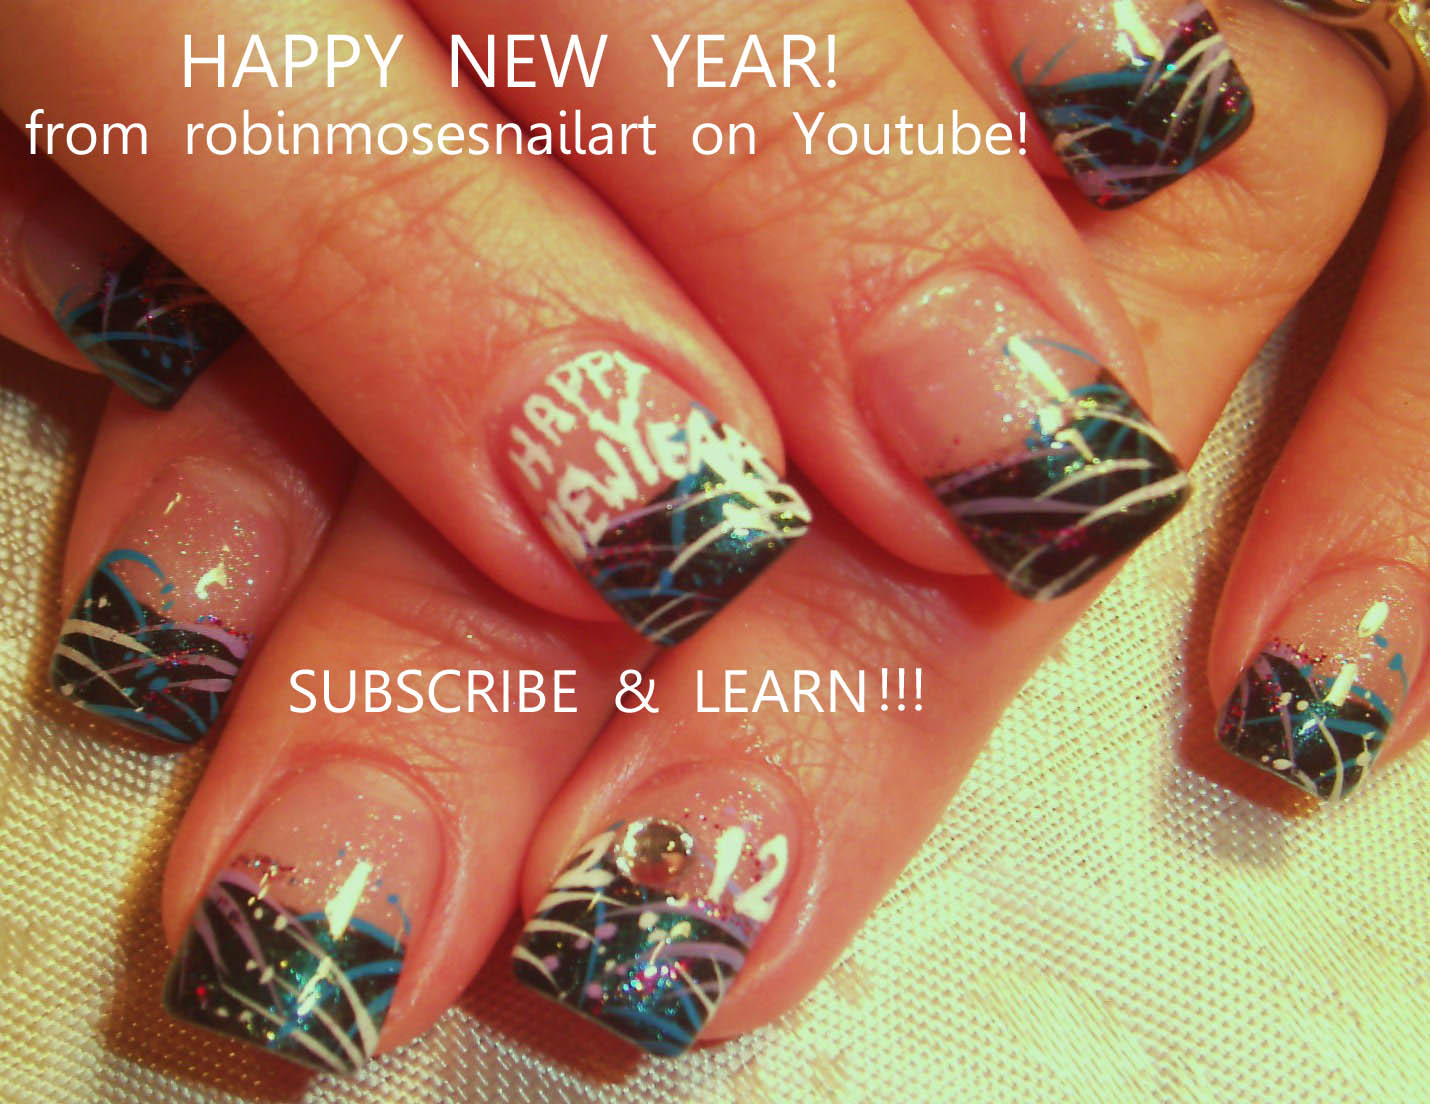 Robin moses nail art new york nails new year 2012 new year new york nails for new years eve 2012 robin moses original party girl nail art design tutorial 558 prinsesfo Images